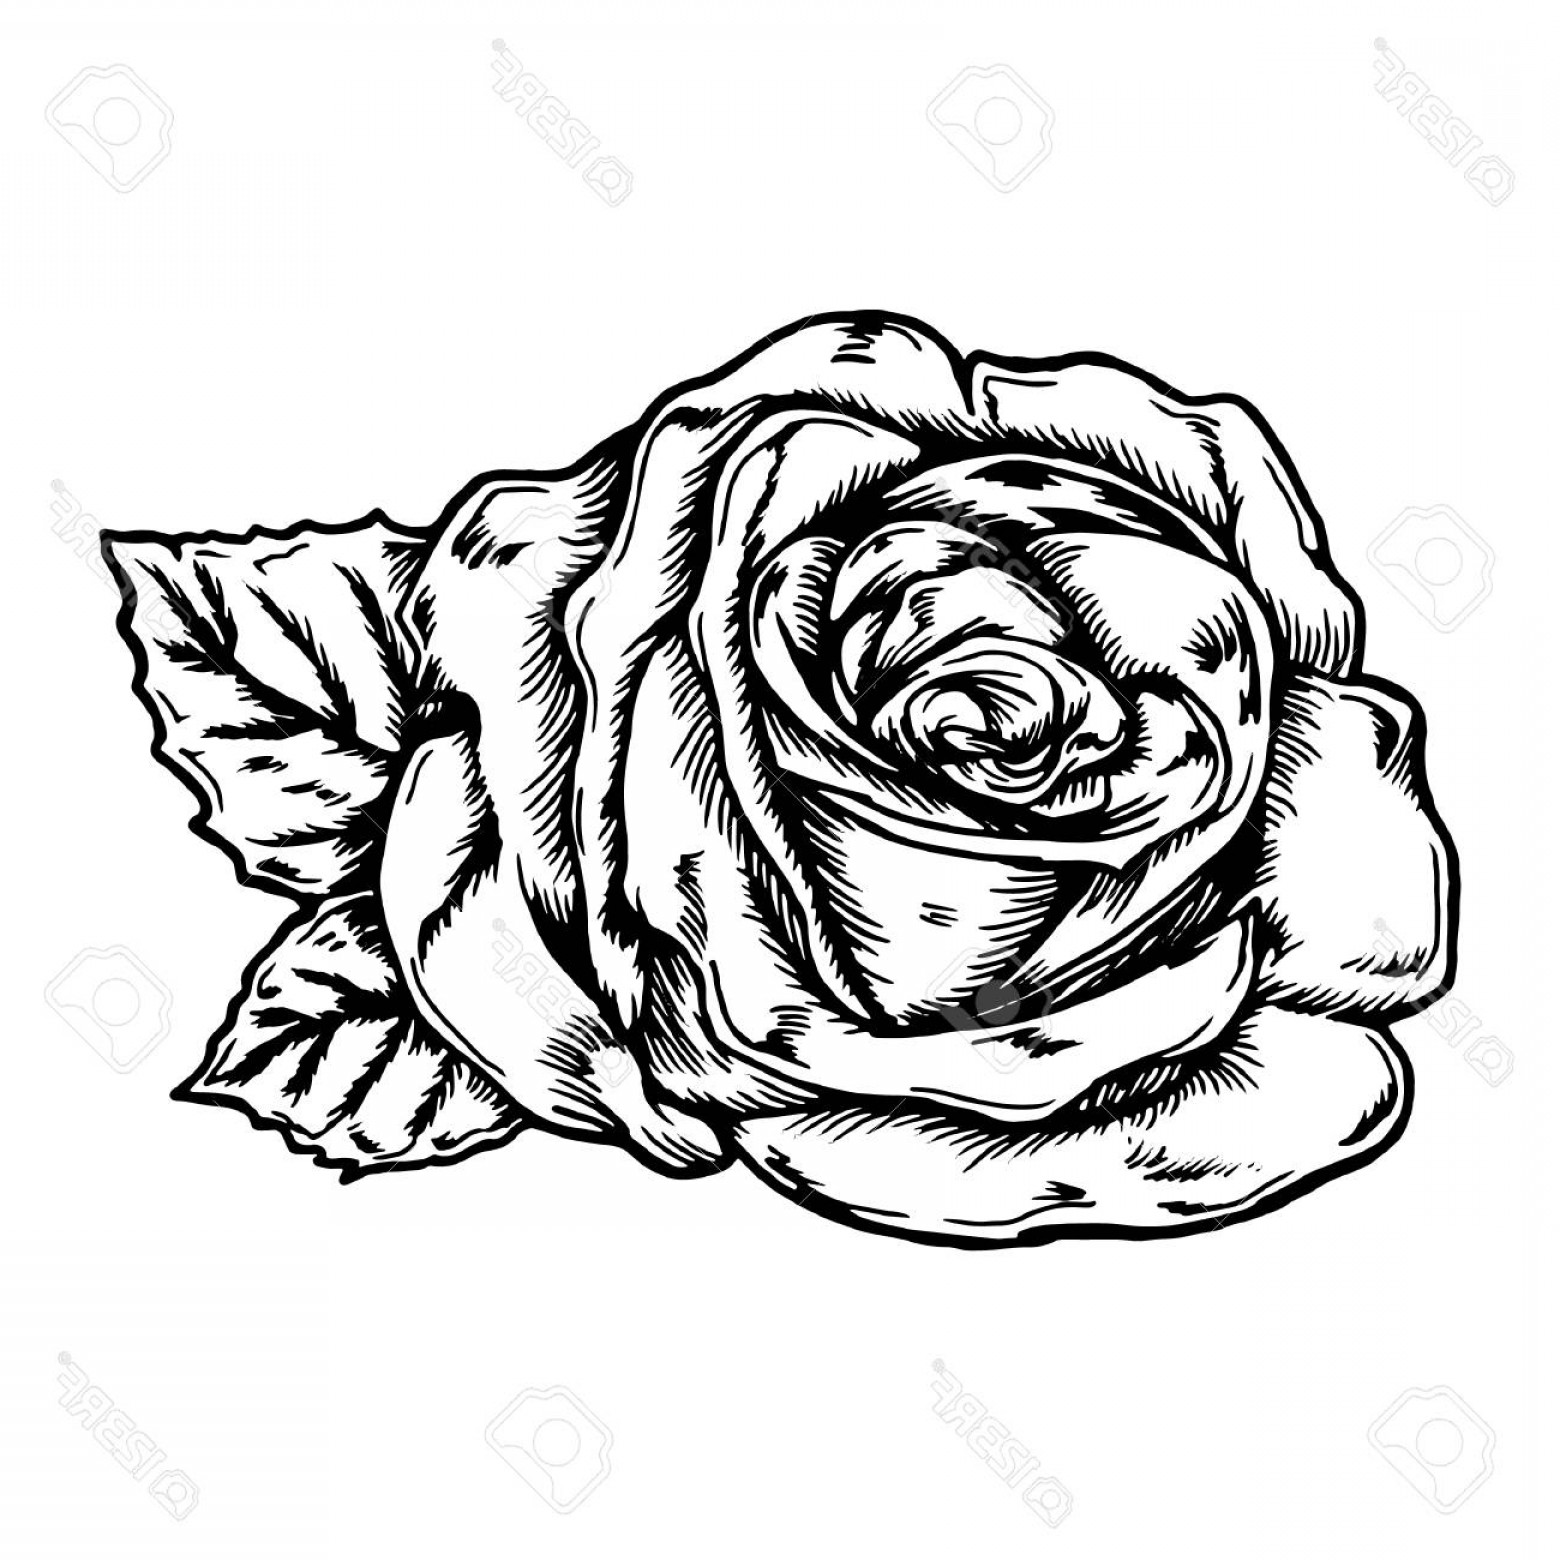 Rose Icon Vector At Free For Personal Use Flower Line Diagram Simple Drawing Of Bud Stock 1560x1560 Photostock Thin Lazttweet